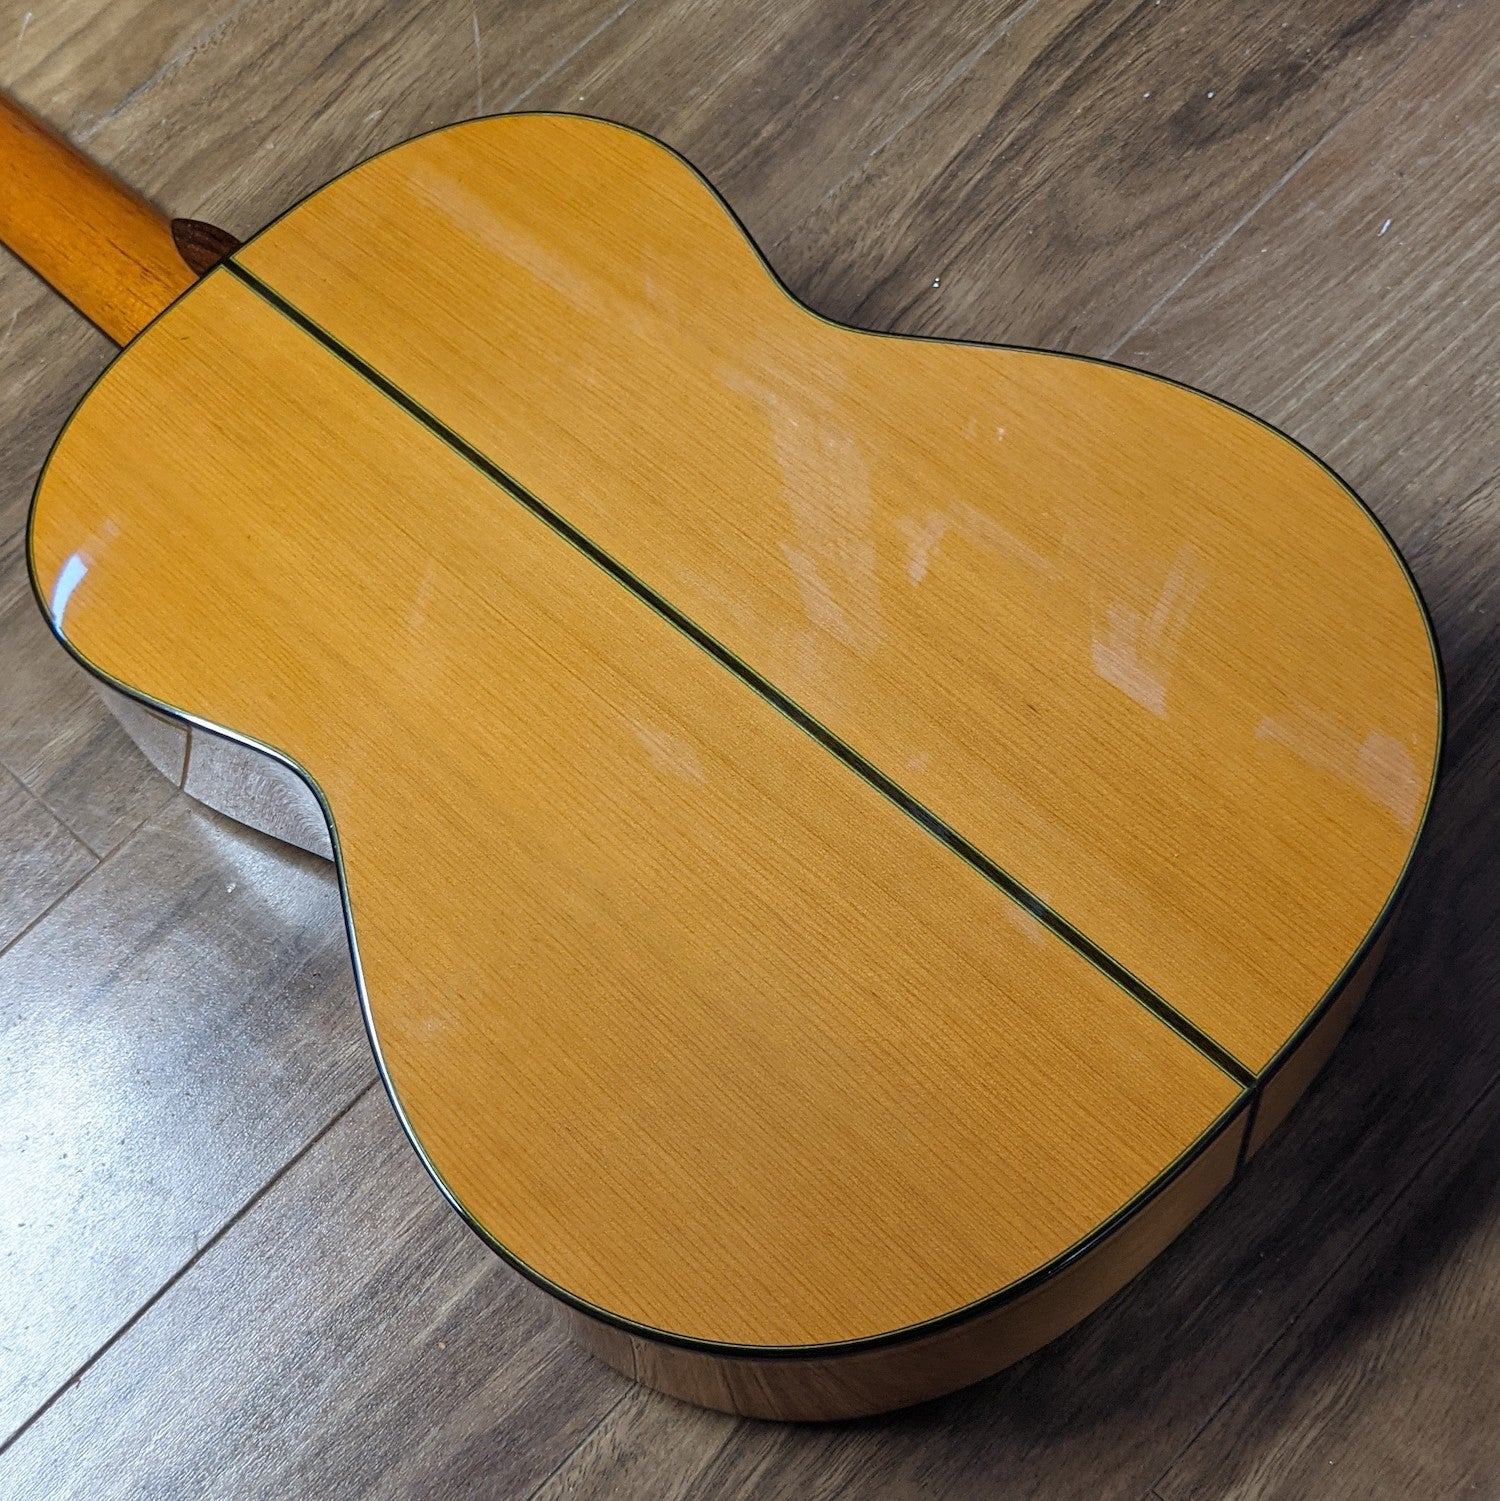 Katoh KSF All Solid Flamenco Guitar w/Case - Used